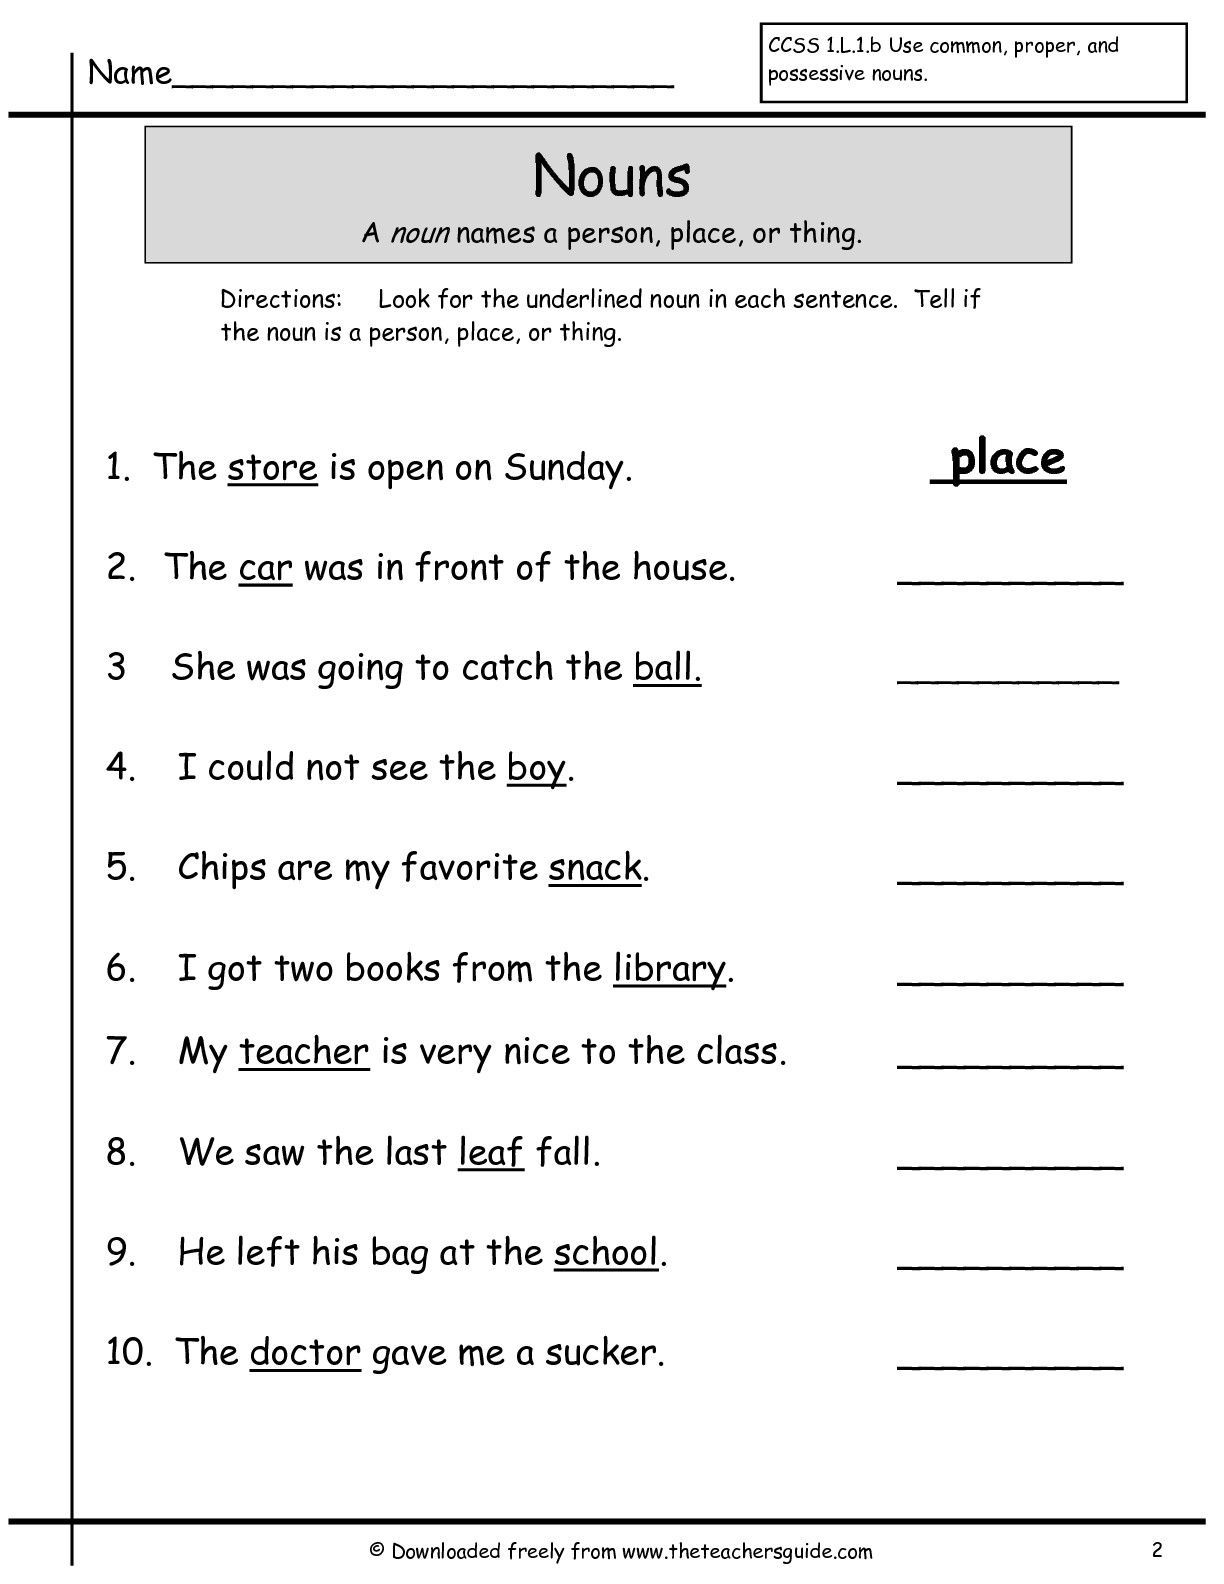 hight resolution of Conclusion Worksheet   Printable Worksheets and Activities for Teachers